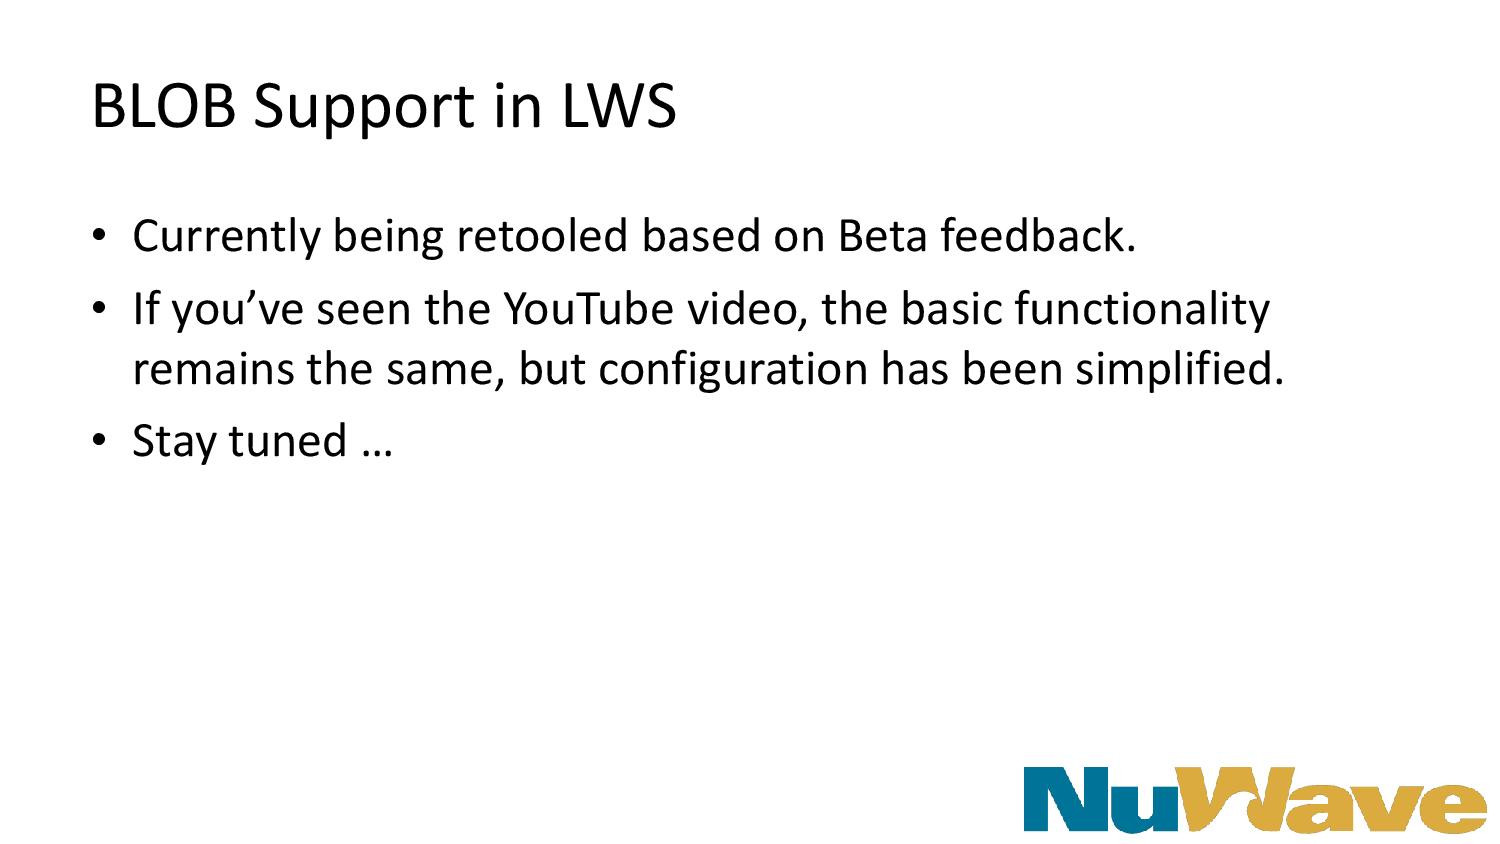 BLOB Support in LWS